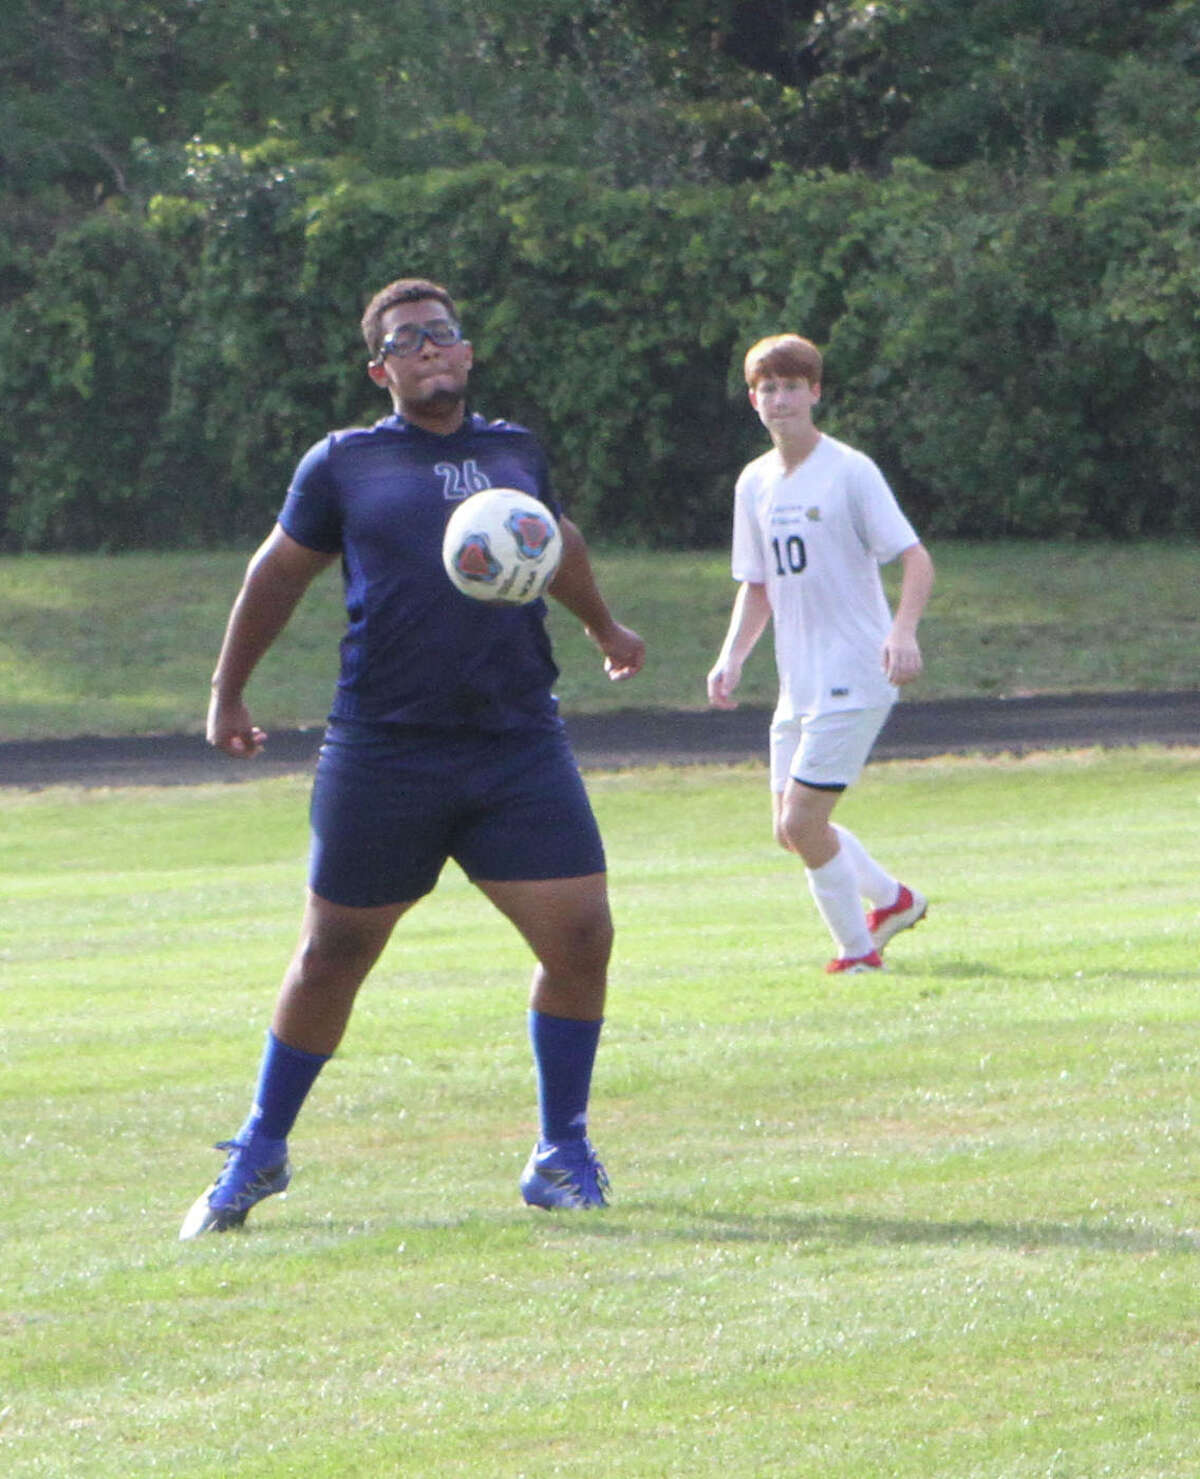 The Crossroads Charter Academy soccer team fell 8-0 to Lakeview on Friday night.